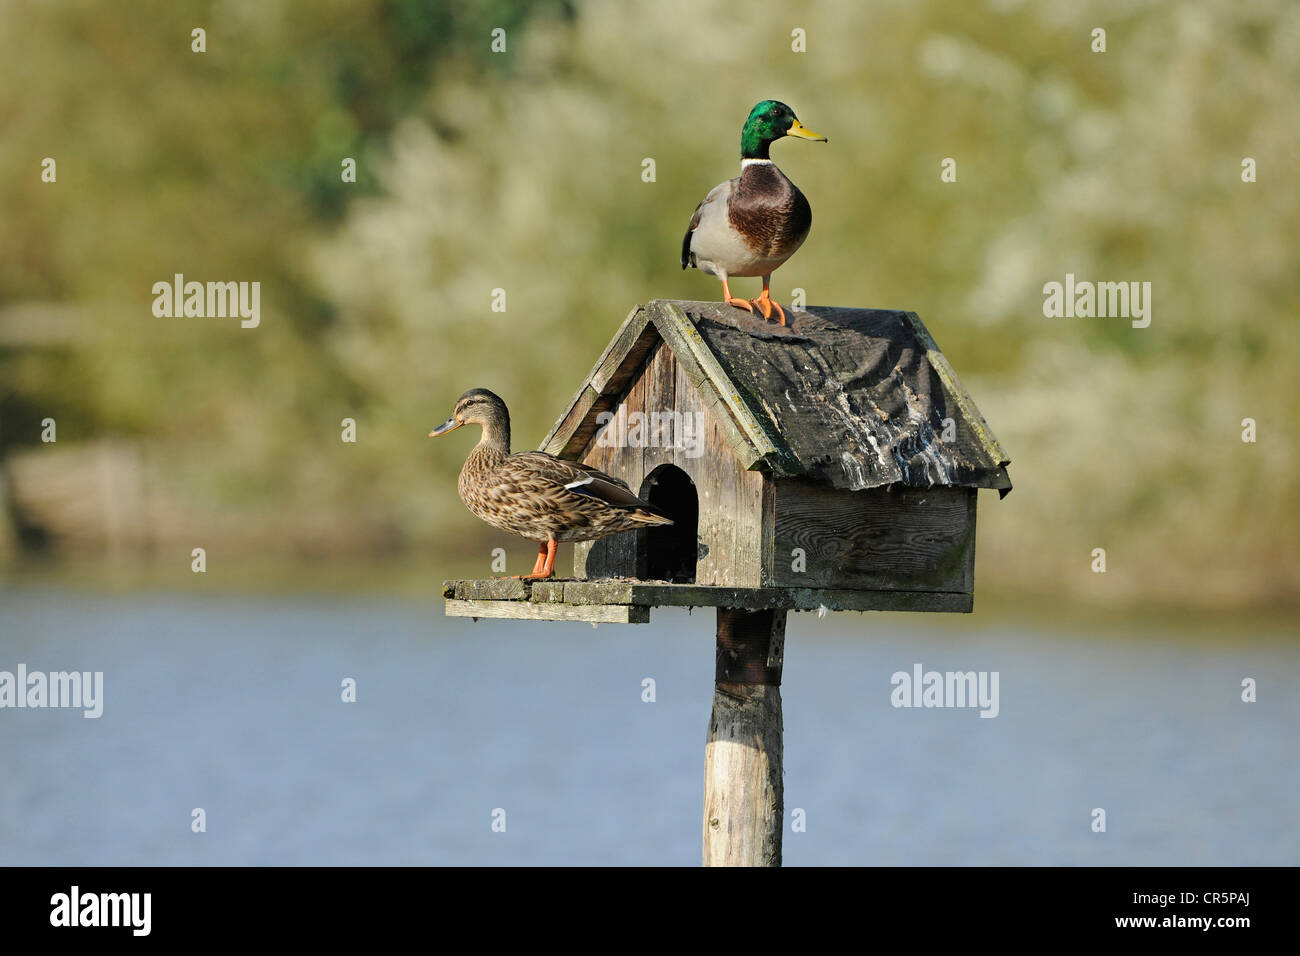 Mallard Ducks (Anas platyrhynchos), male and a female sitting on a nesting aid, a small wooden house that stands - Stock Image